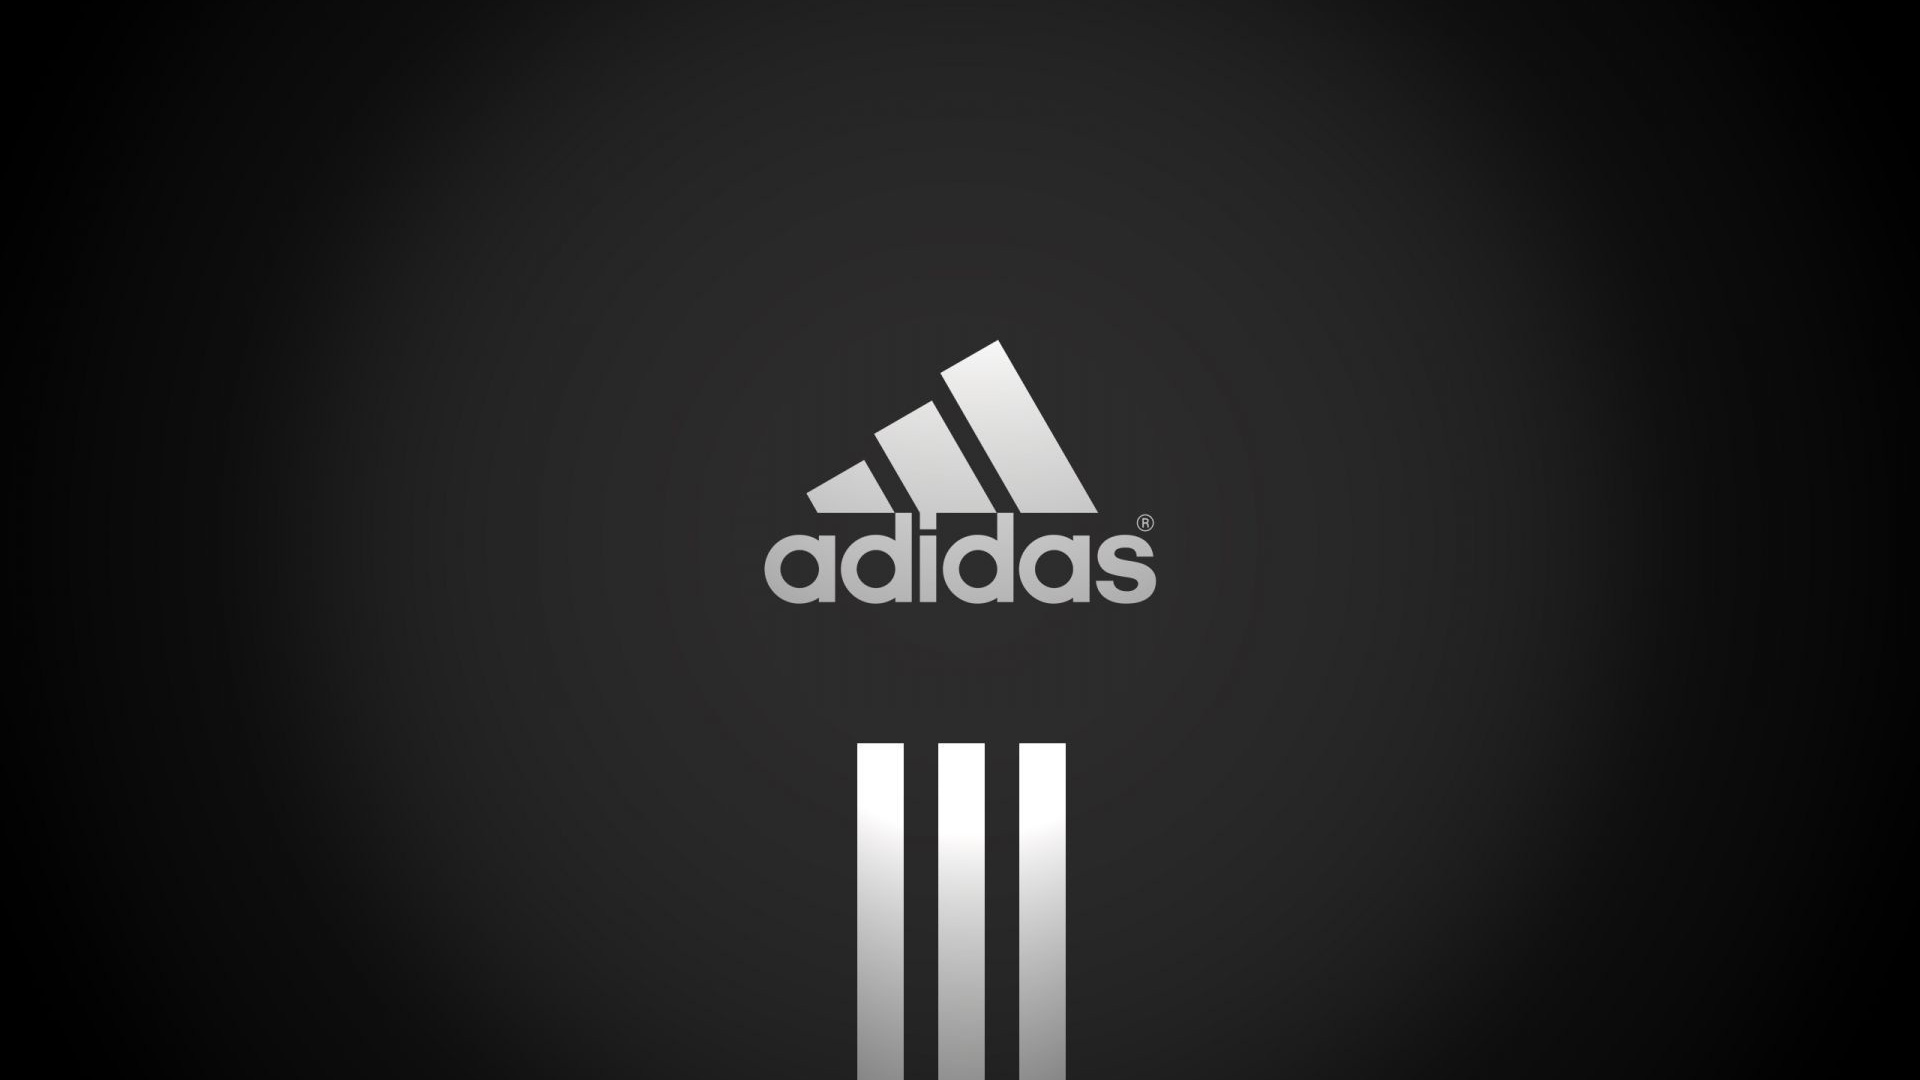 adidas-black-1080p-hd-logo-desktop-wallpaper | wallpaper.wiki